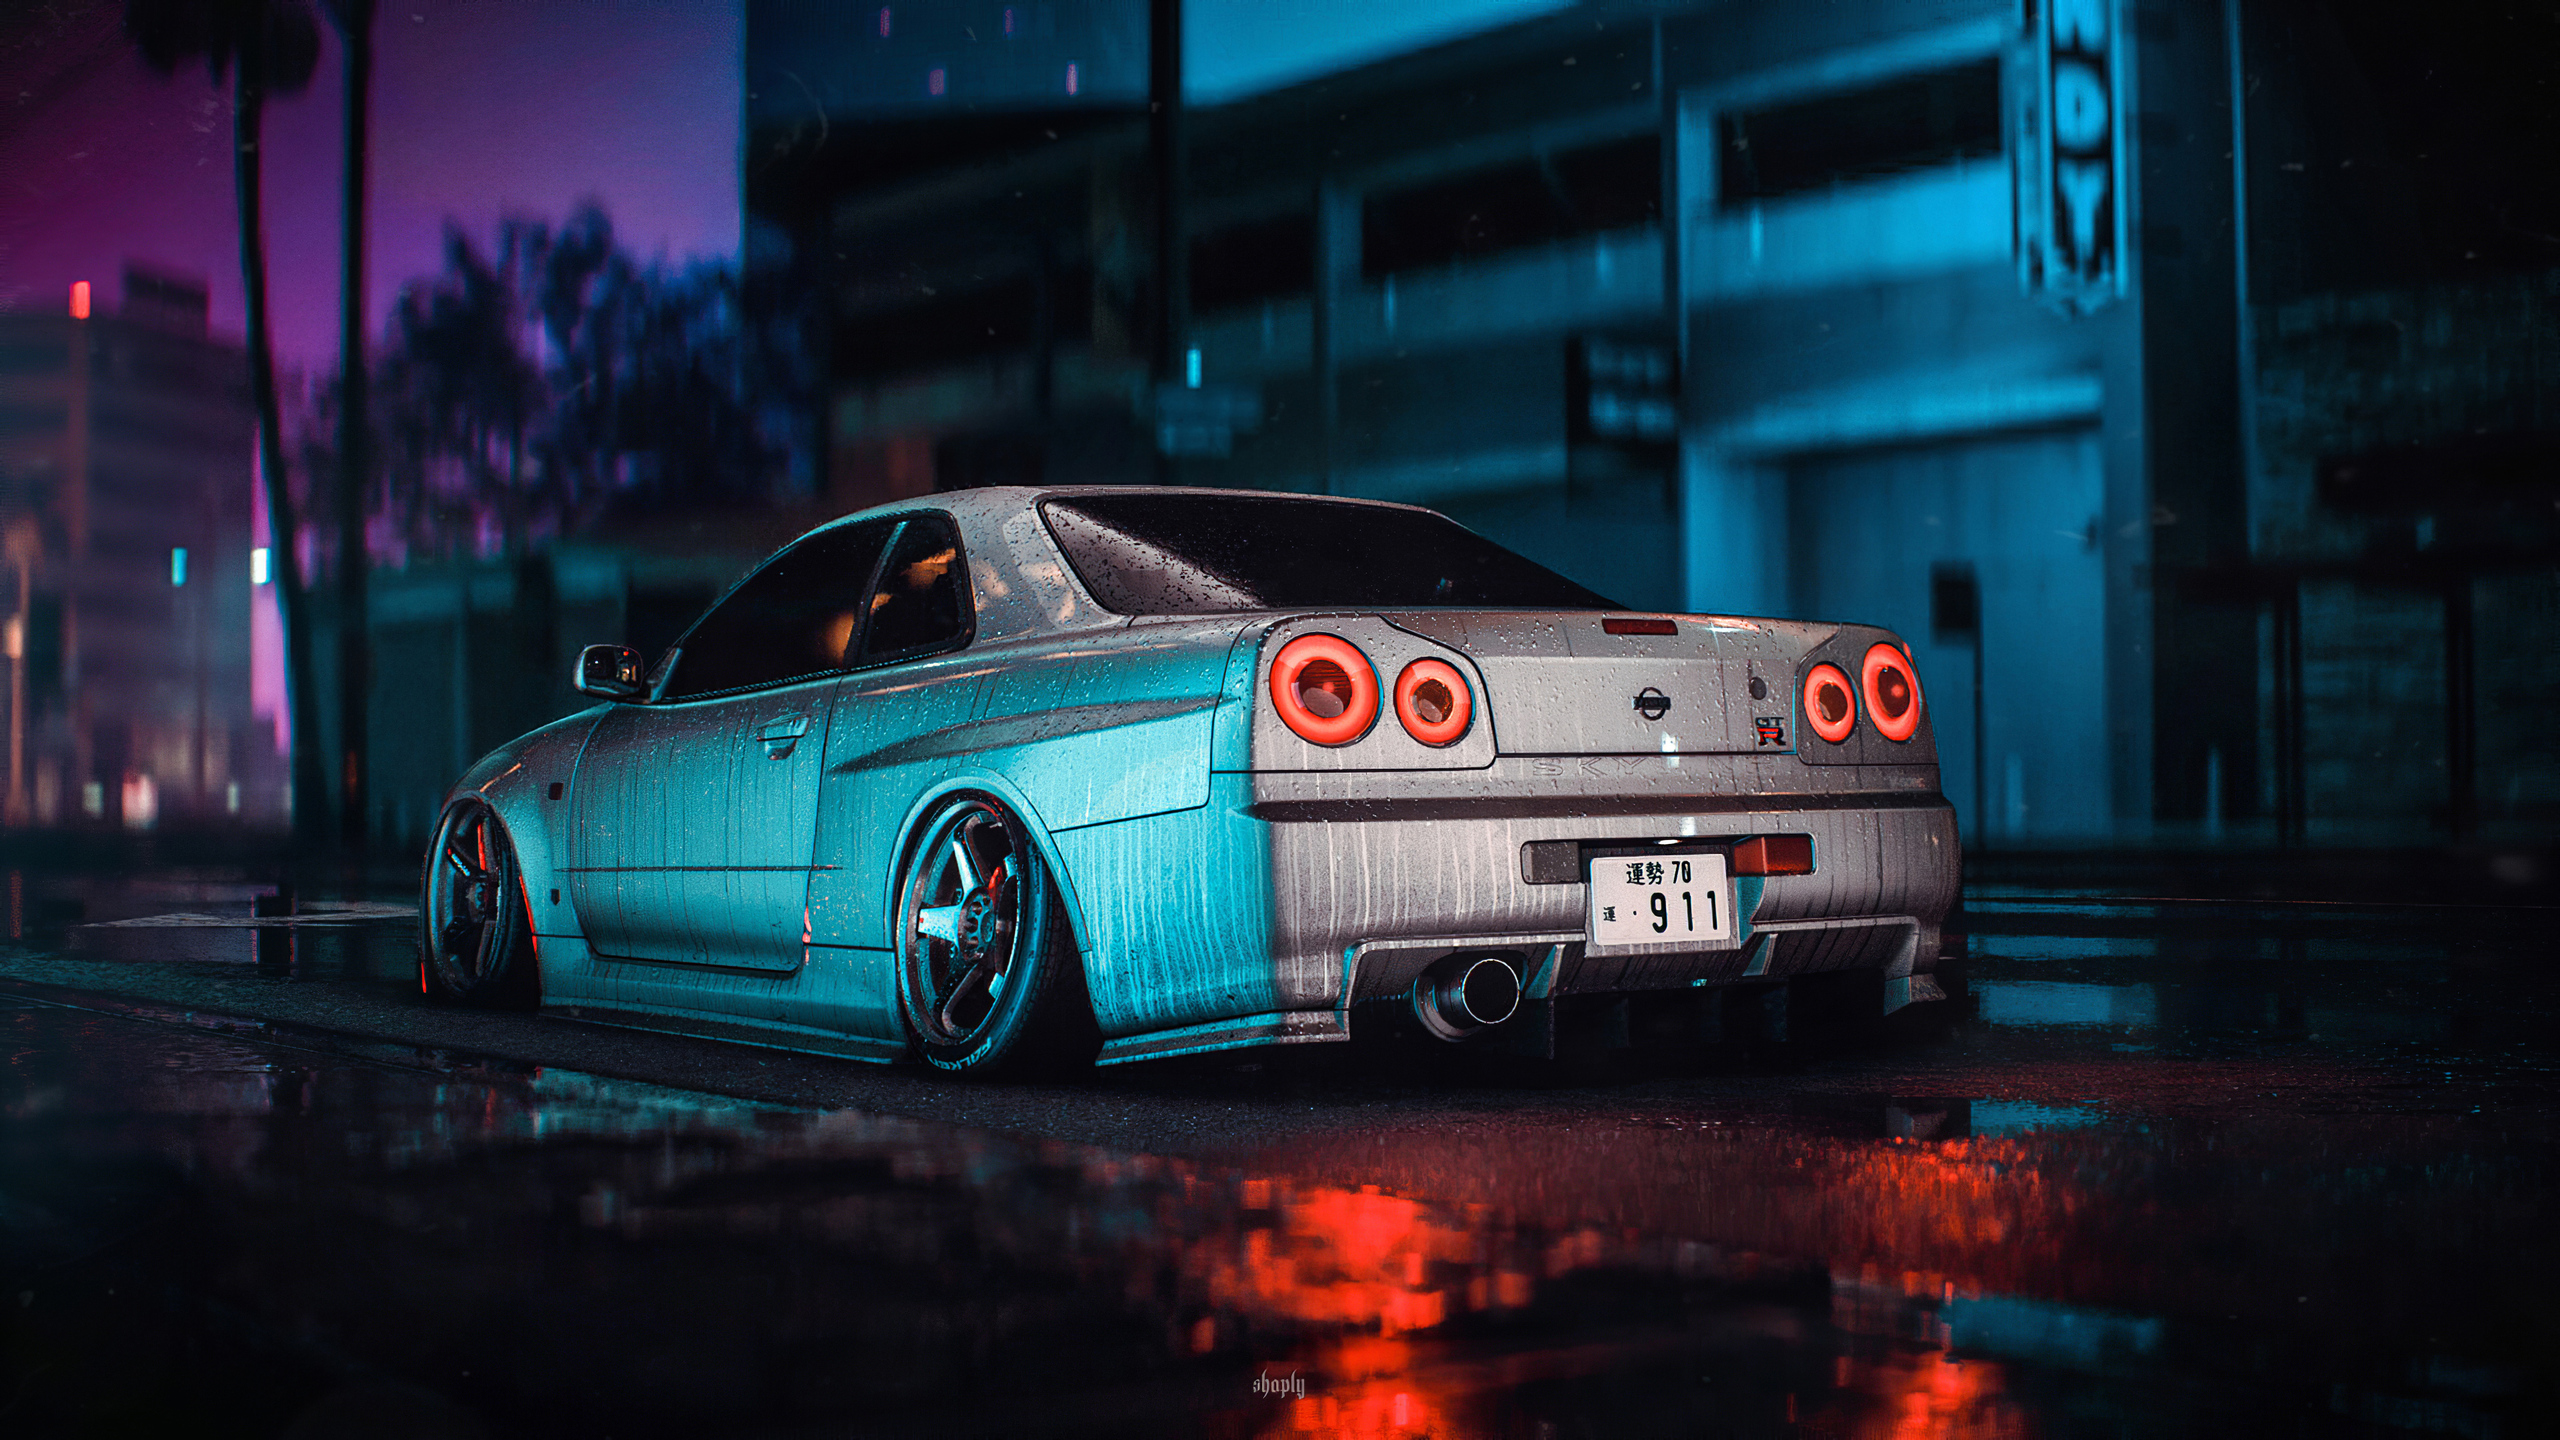 2560x1440 Nissan Skyline Gt R R34 Need For Speed 4k 1440p